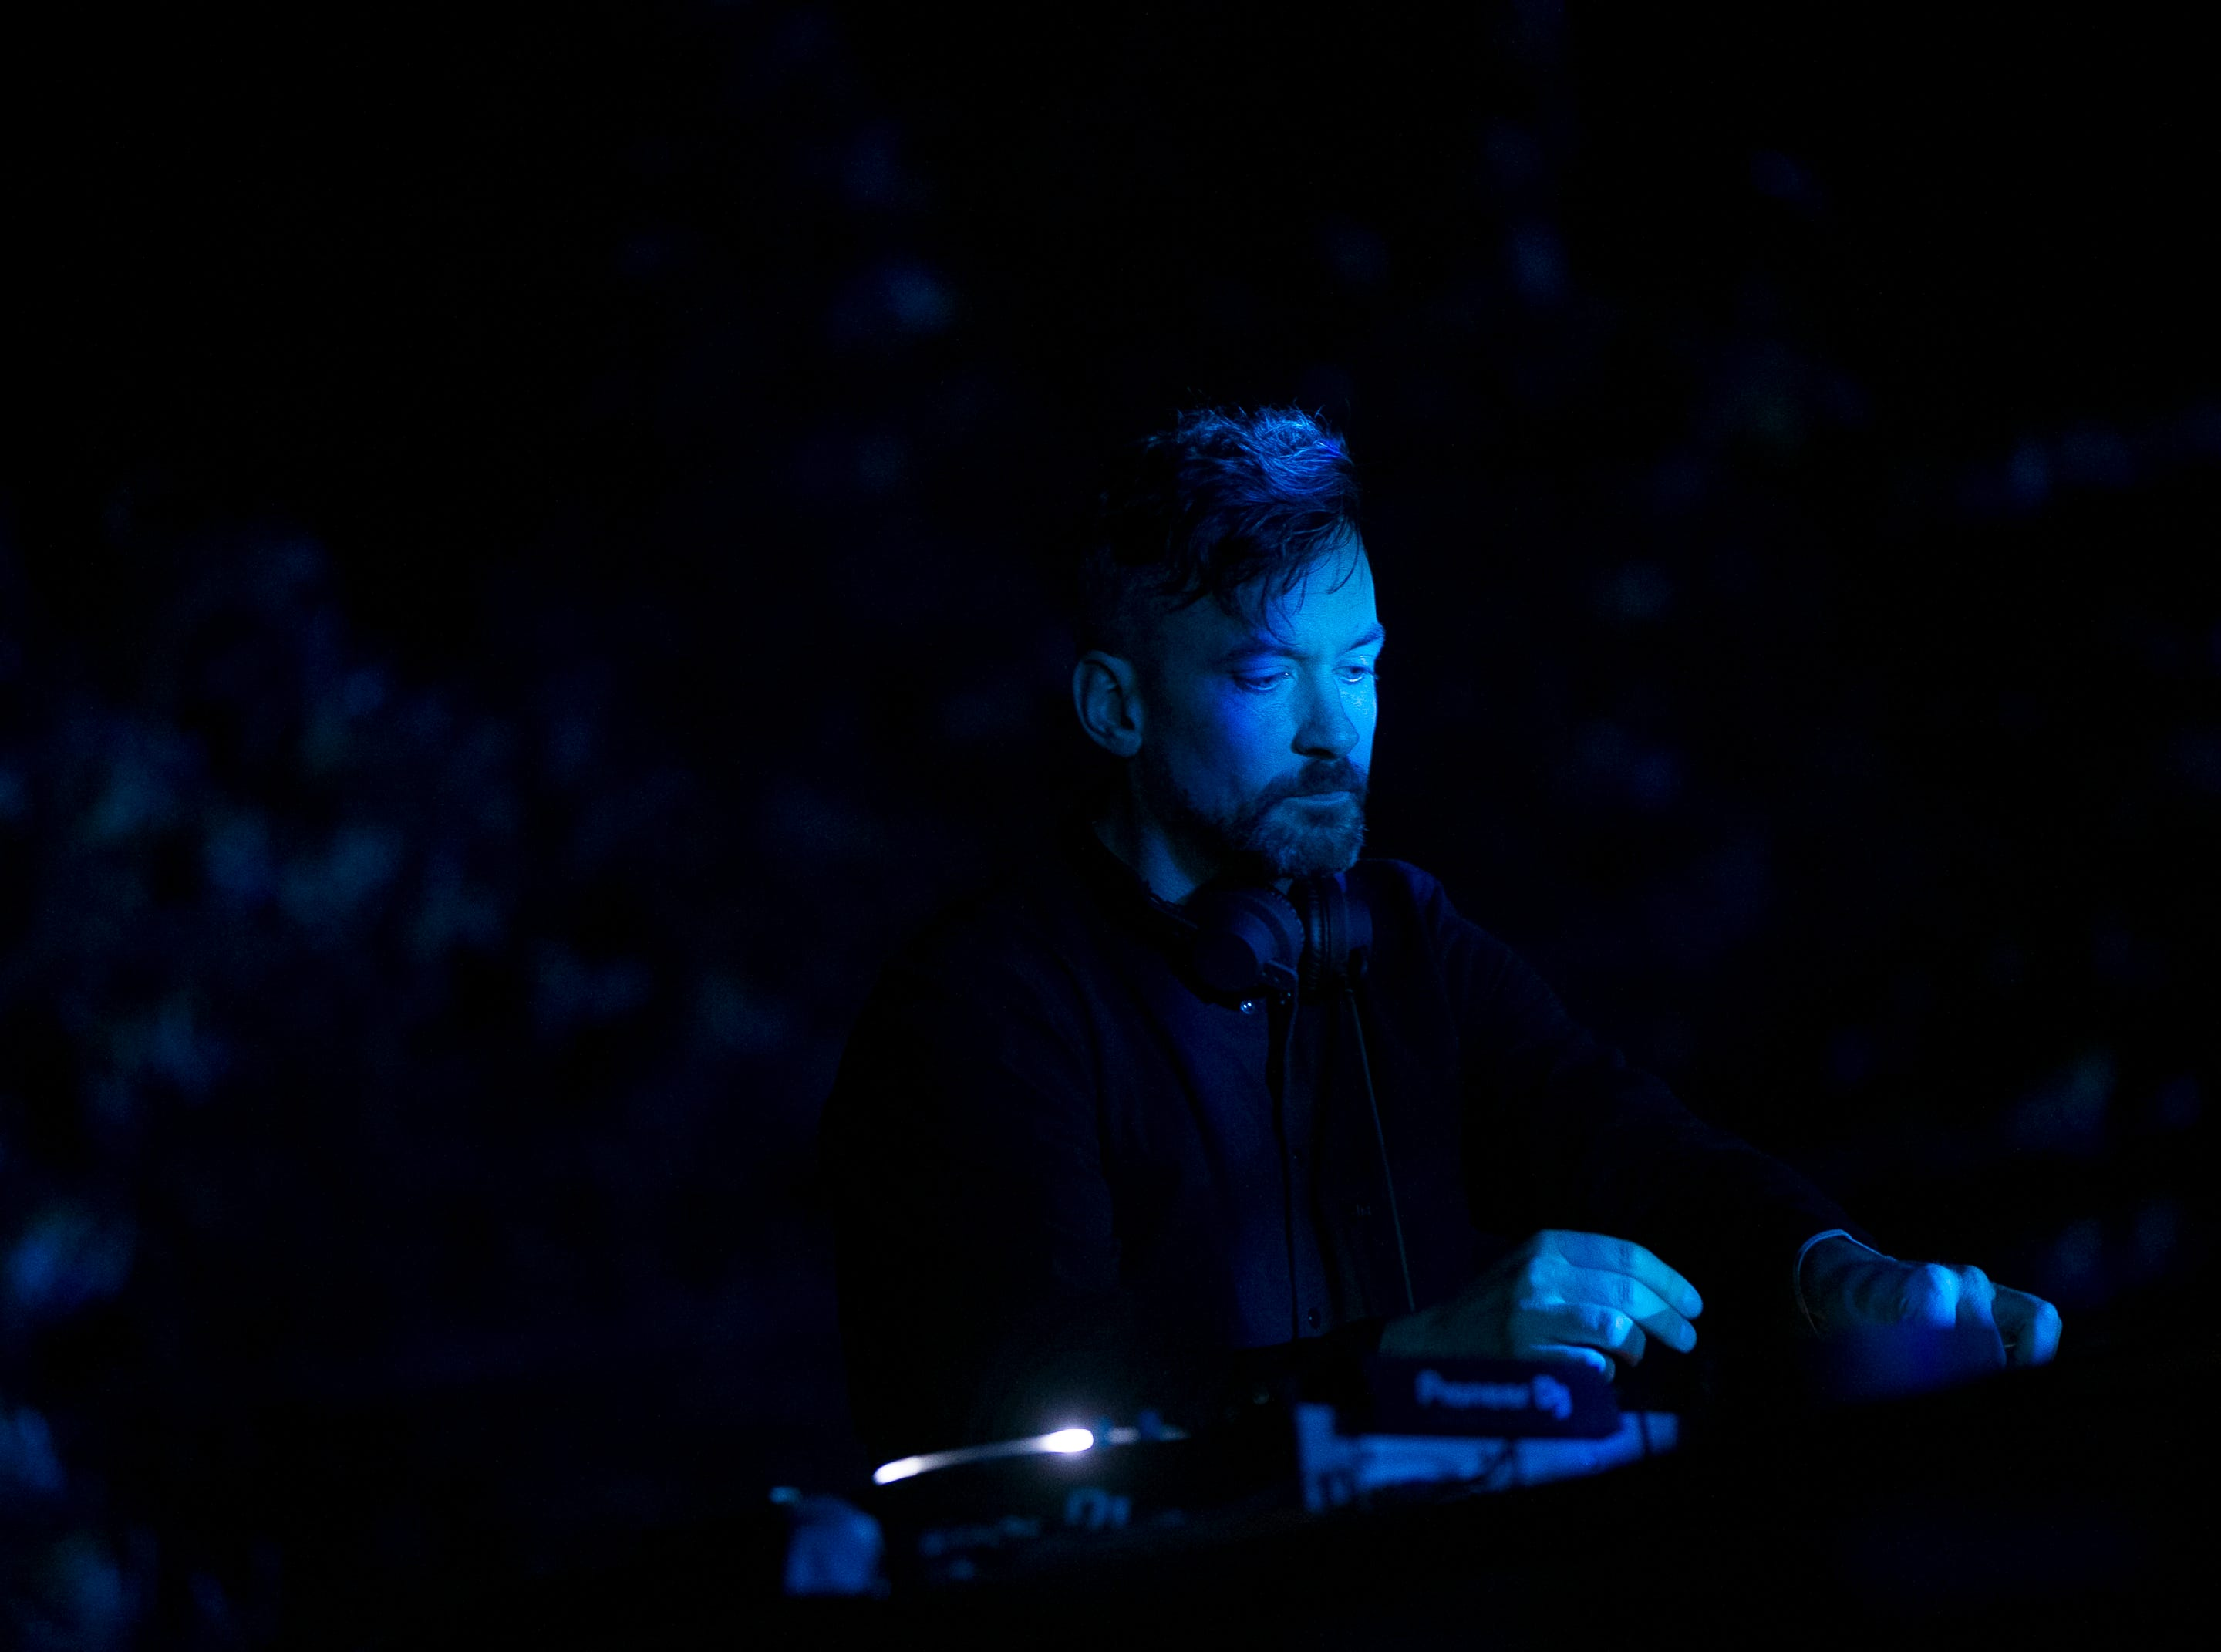 Bonobo performs at the 2019 FORM Arcosanti music festival near Camp Verde, Arizona, on May 10, 2019.